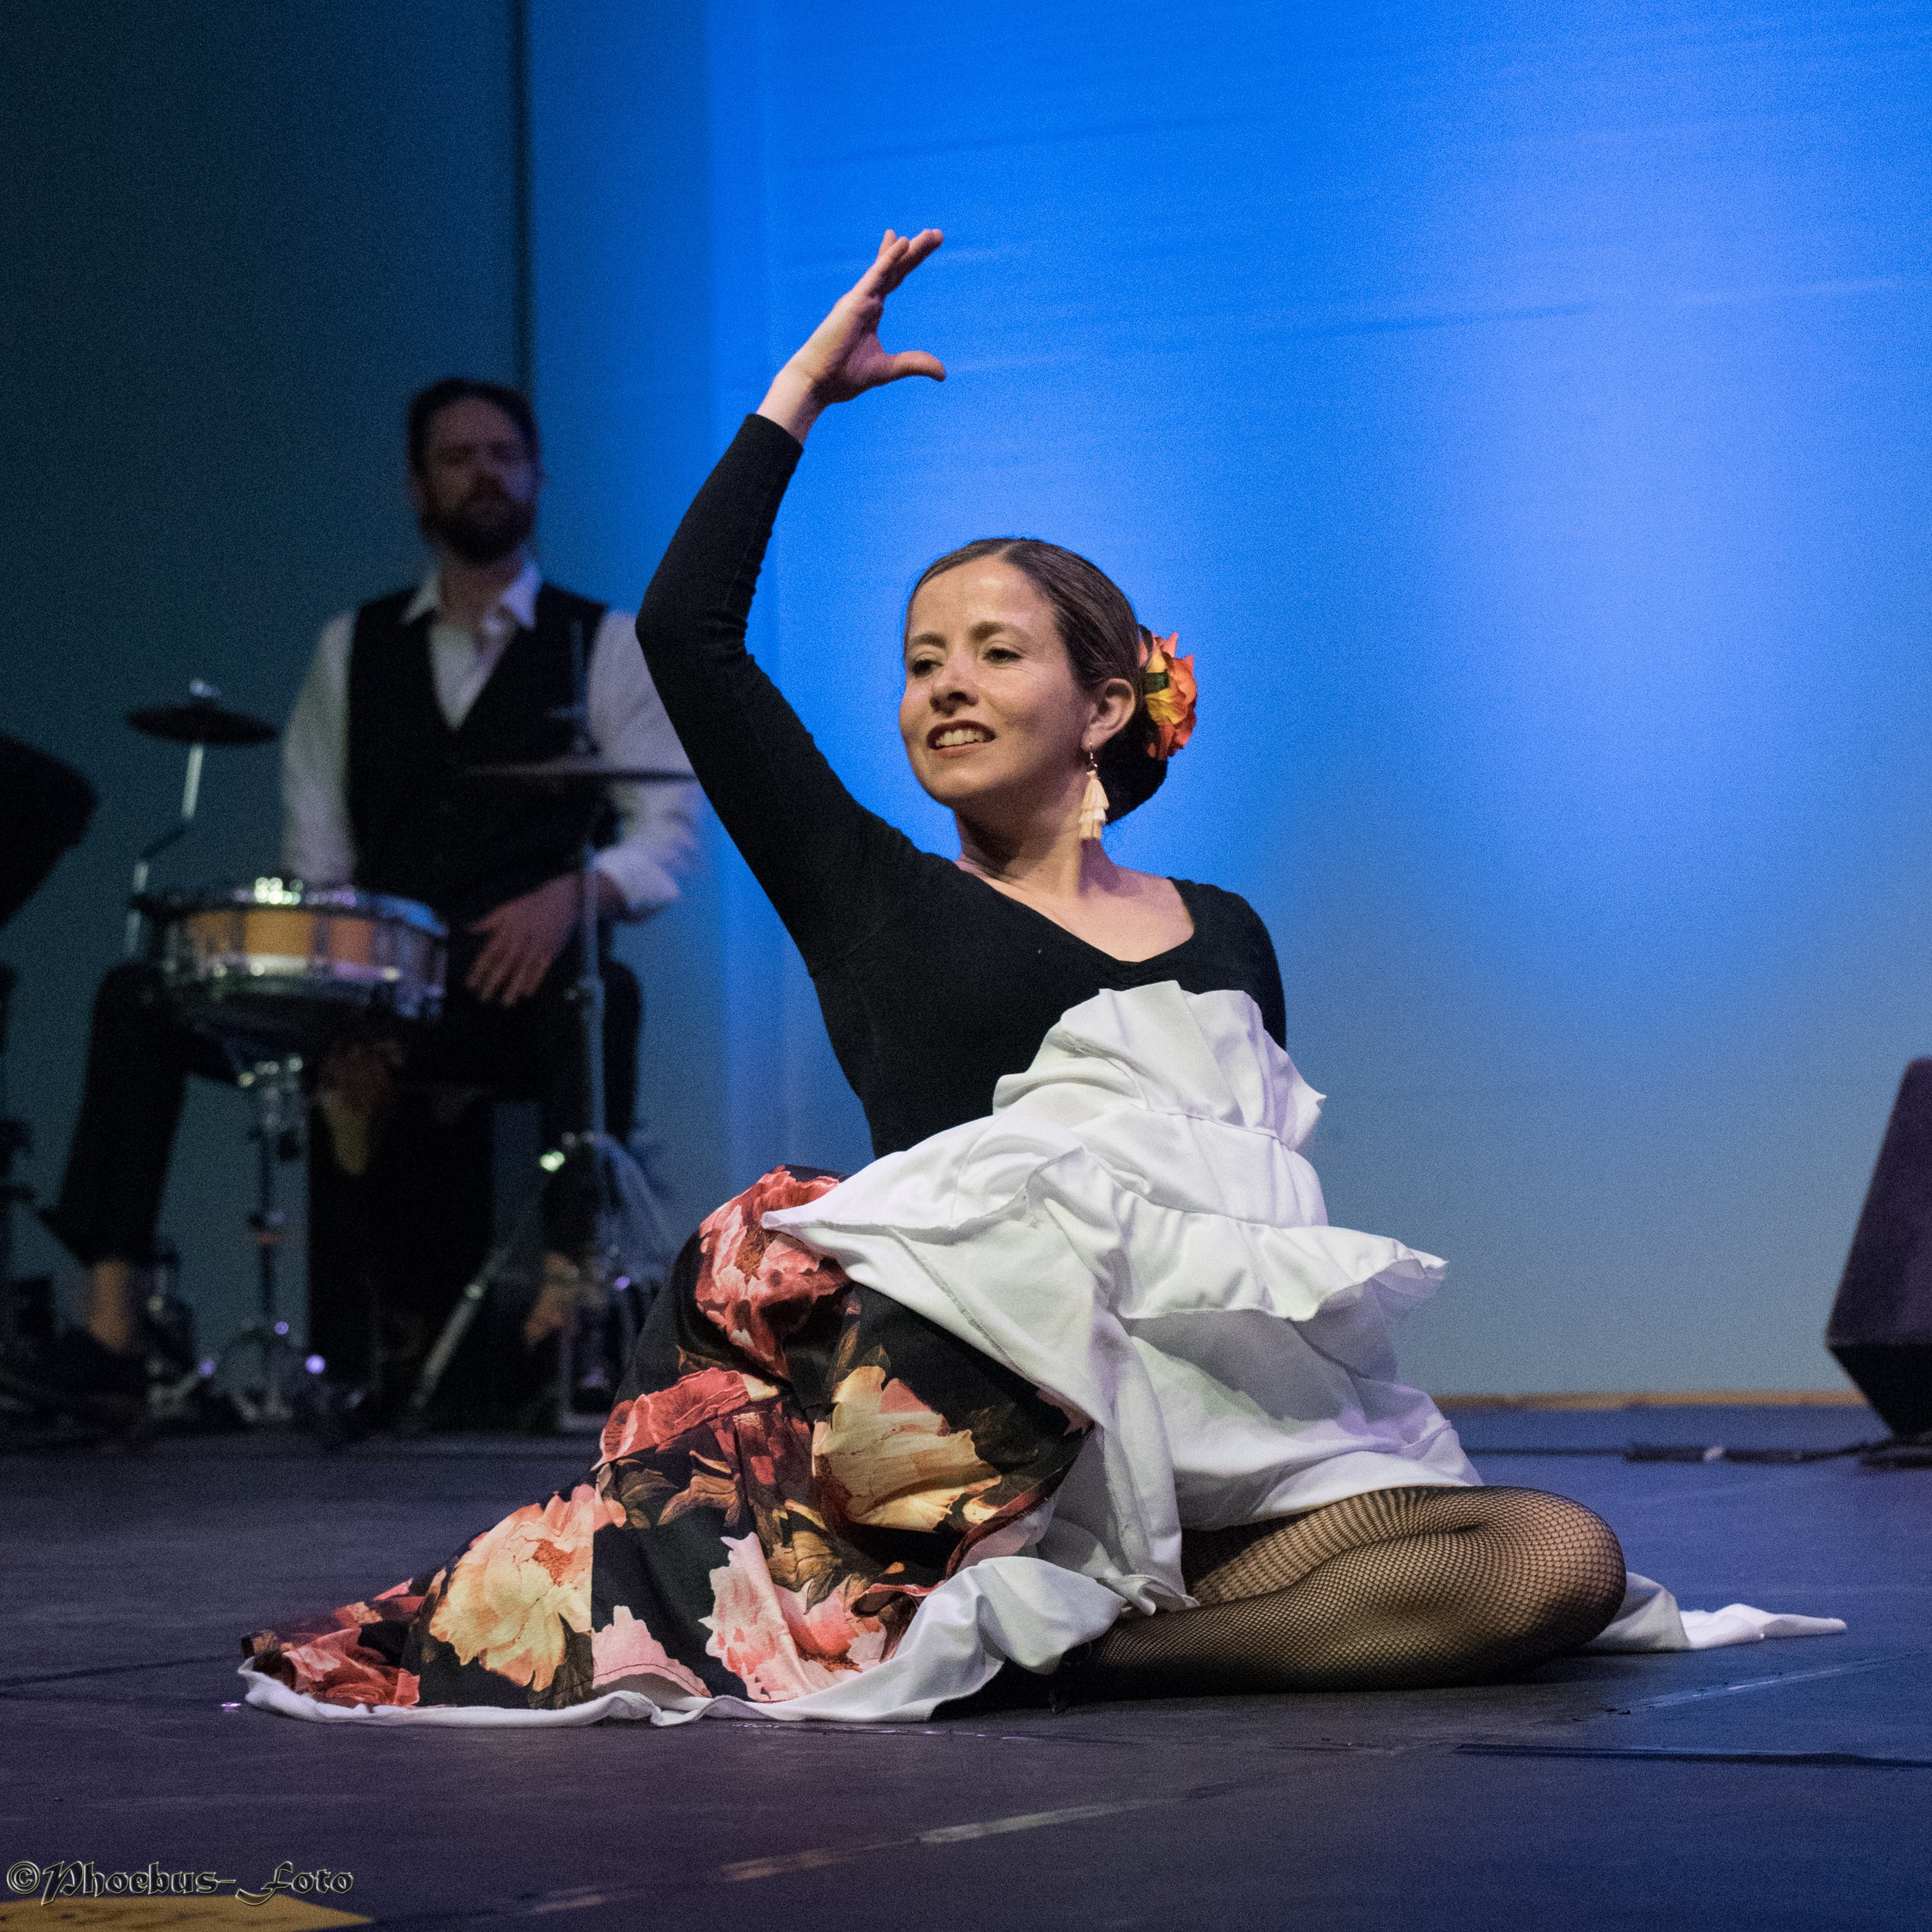 FERIA DE PORTLAND 2019  The students of Semilla Flamenca were part of the Feria Flamenca in Portland, as well as their teacher, who was part of the final show with amazing special guests.